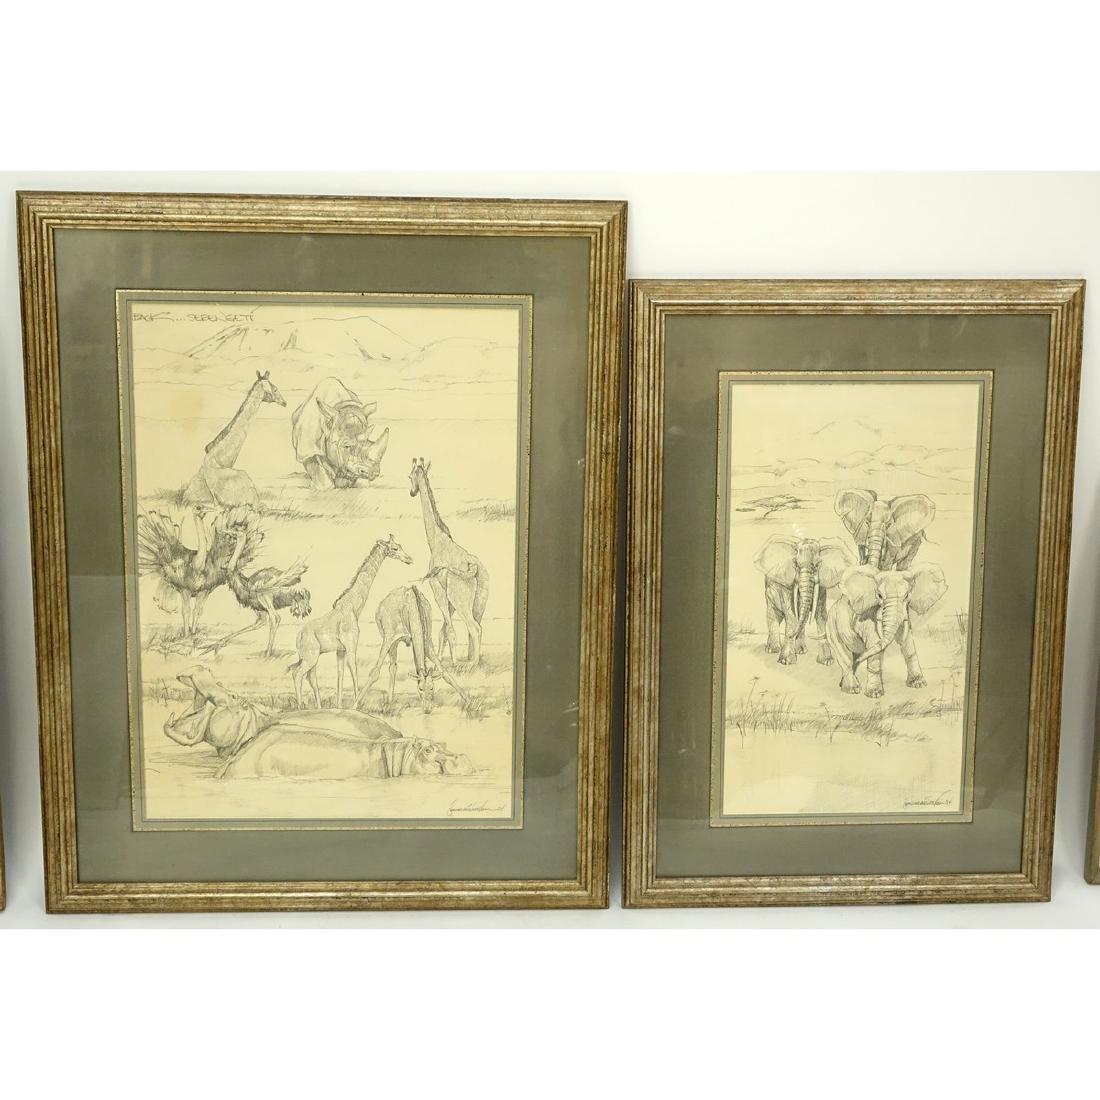 "Two (2) Nicely Done Pencil Drawings ""Serengeti"". Signed"